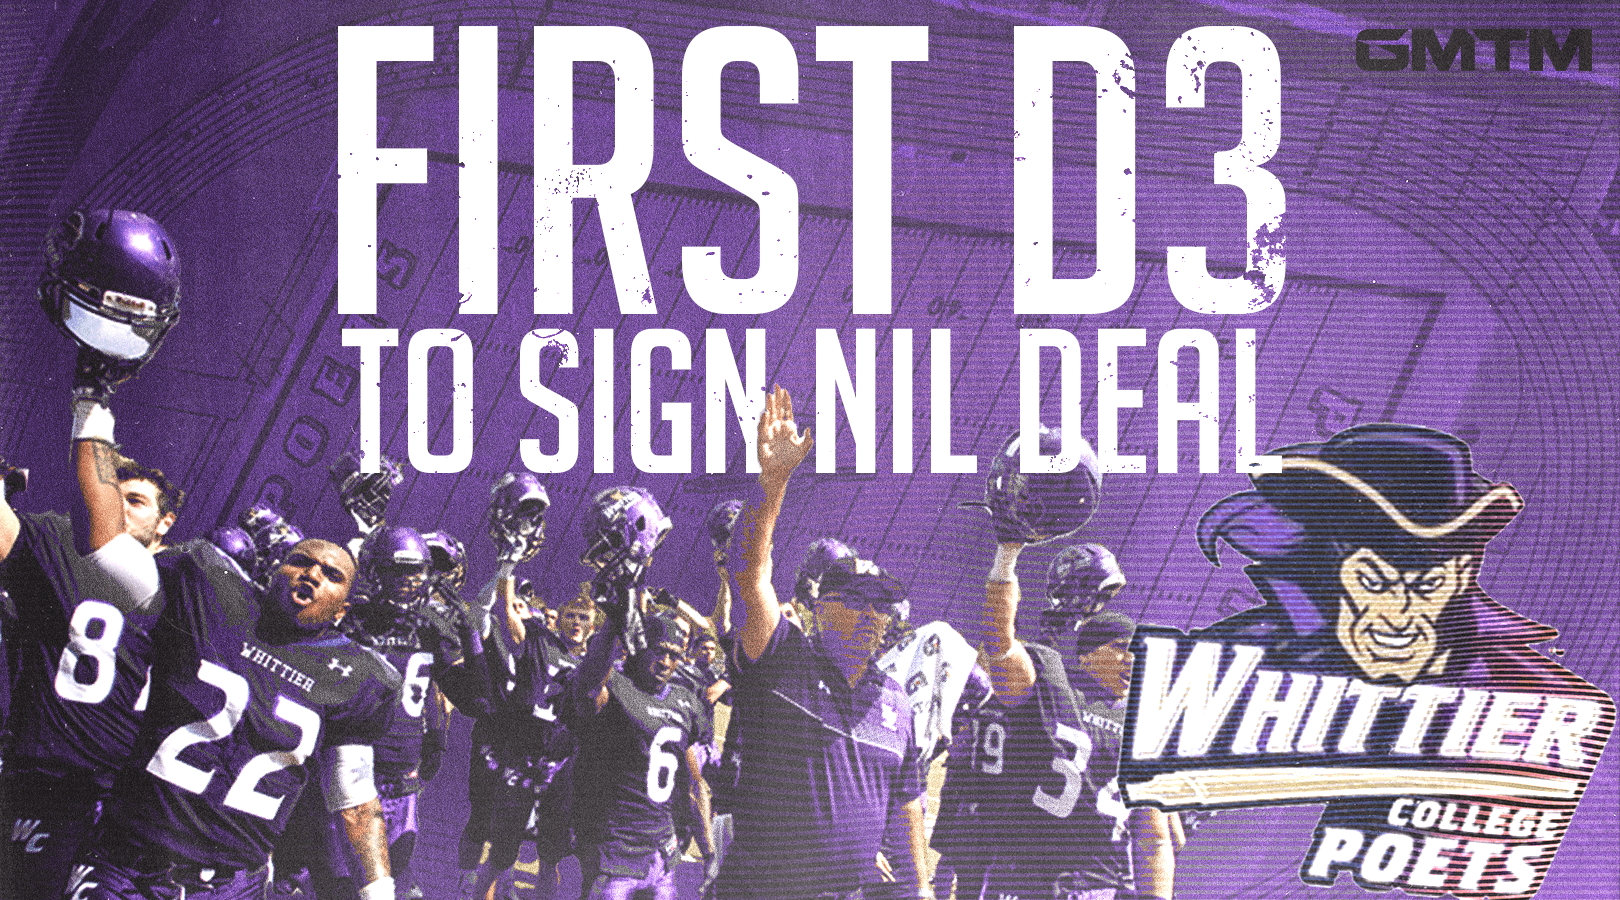 Whittier College Becomes First Division-III Program To Sign NIL Deal